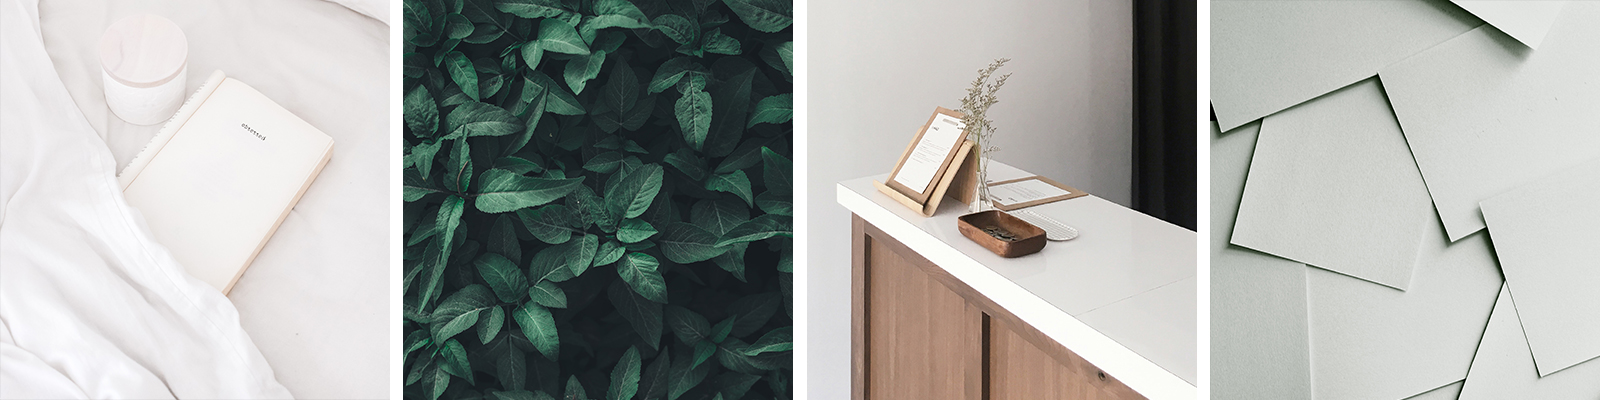 Minimal, organic and natural brand inspiration | Where (and How) to Find Inspiration for Your Brand